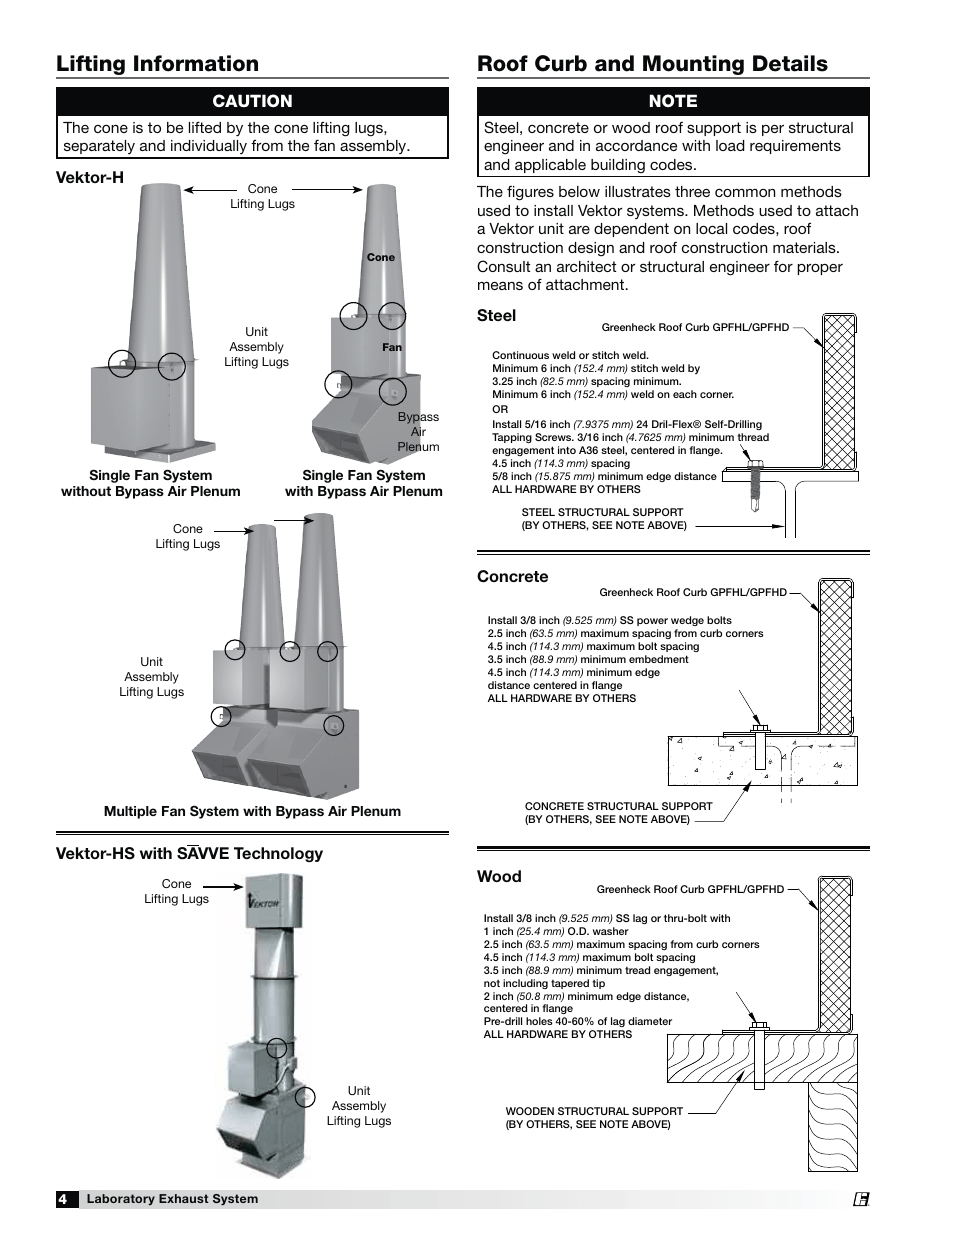 Roof curb and mounting details, Lifting information